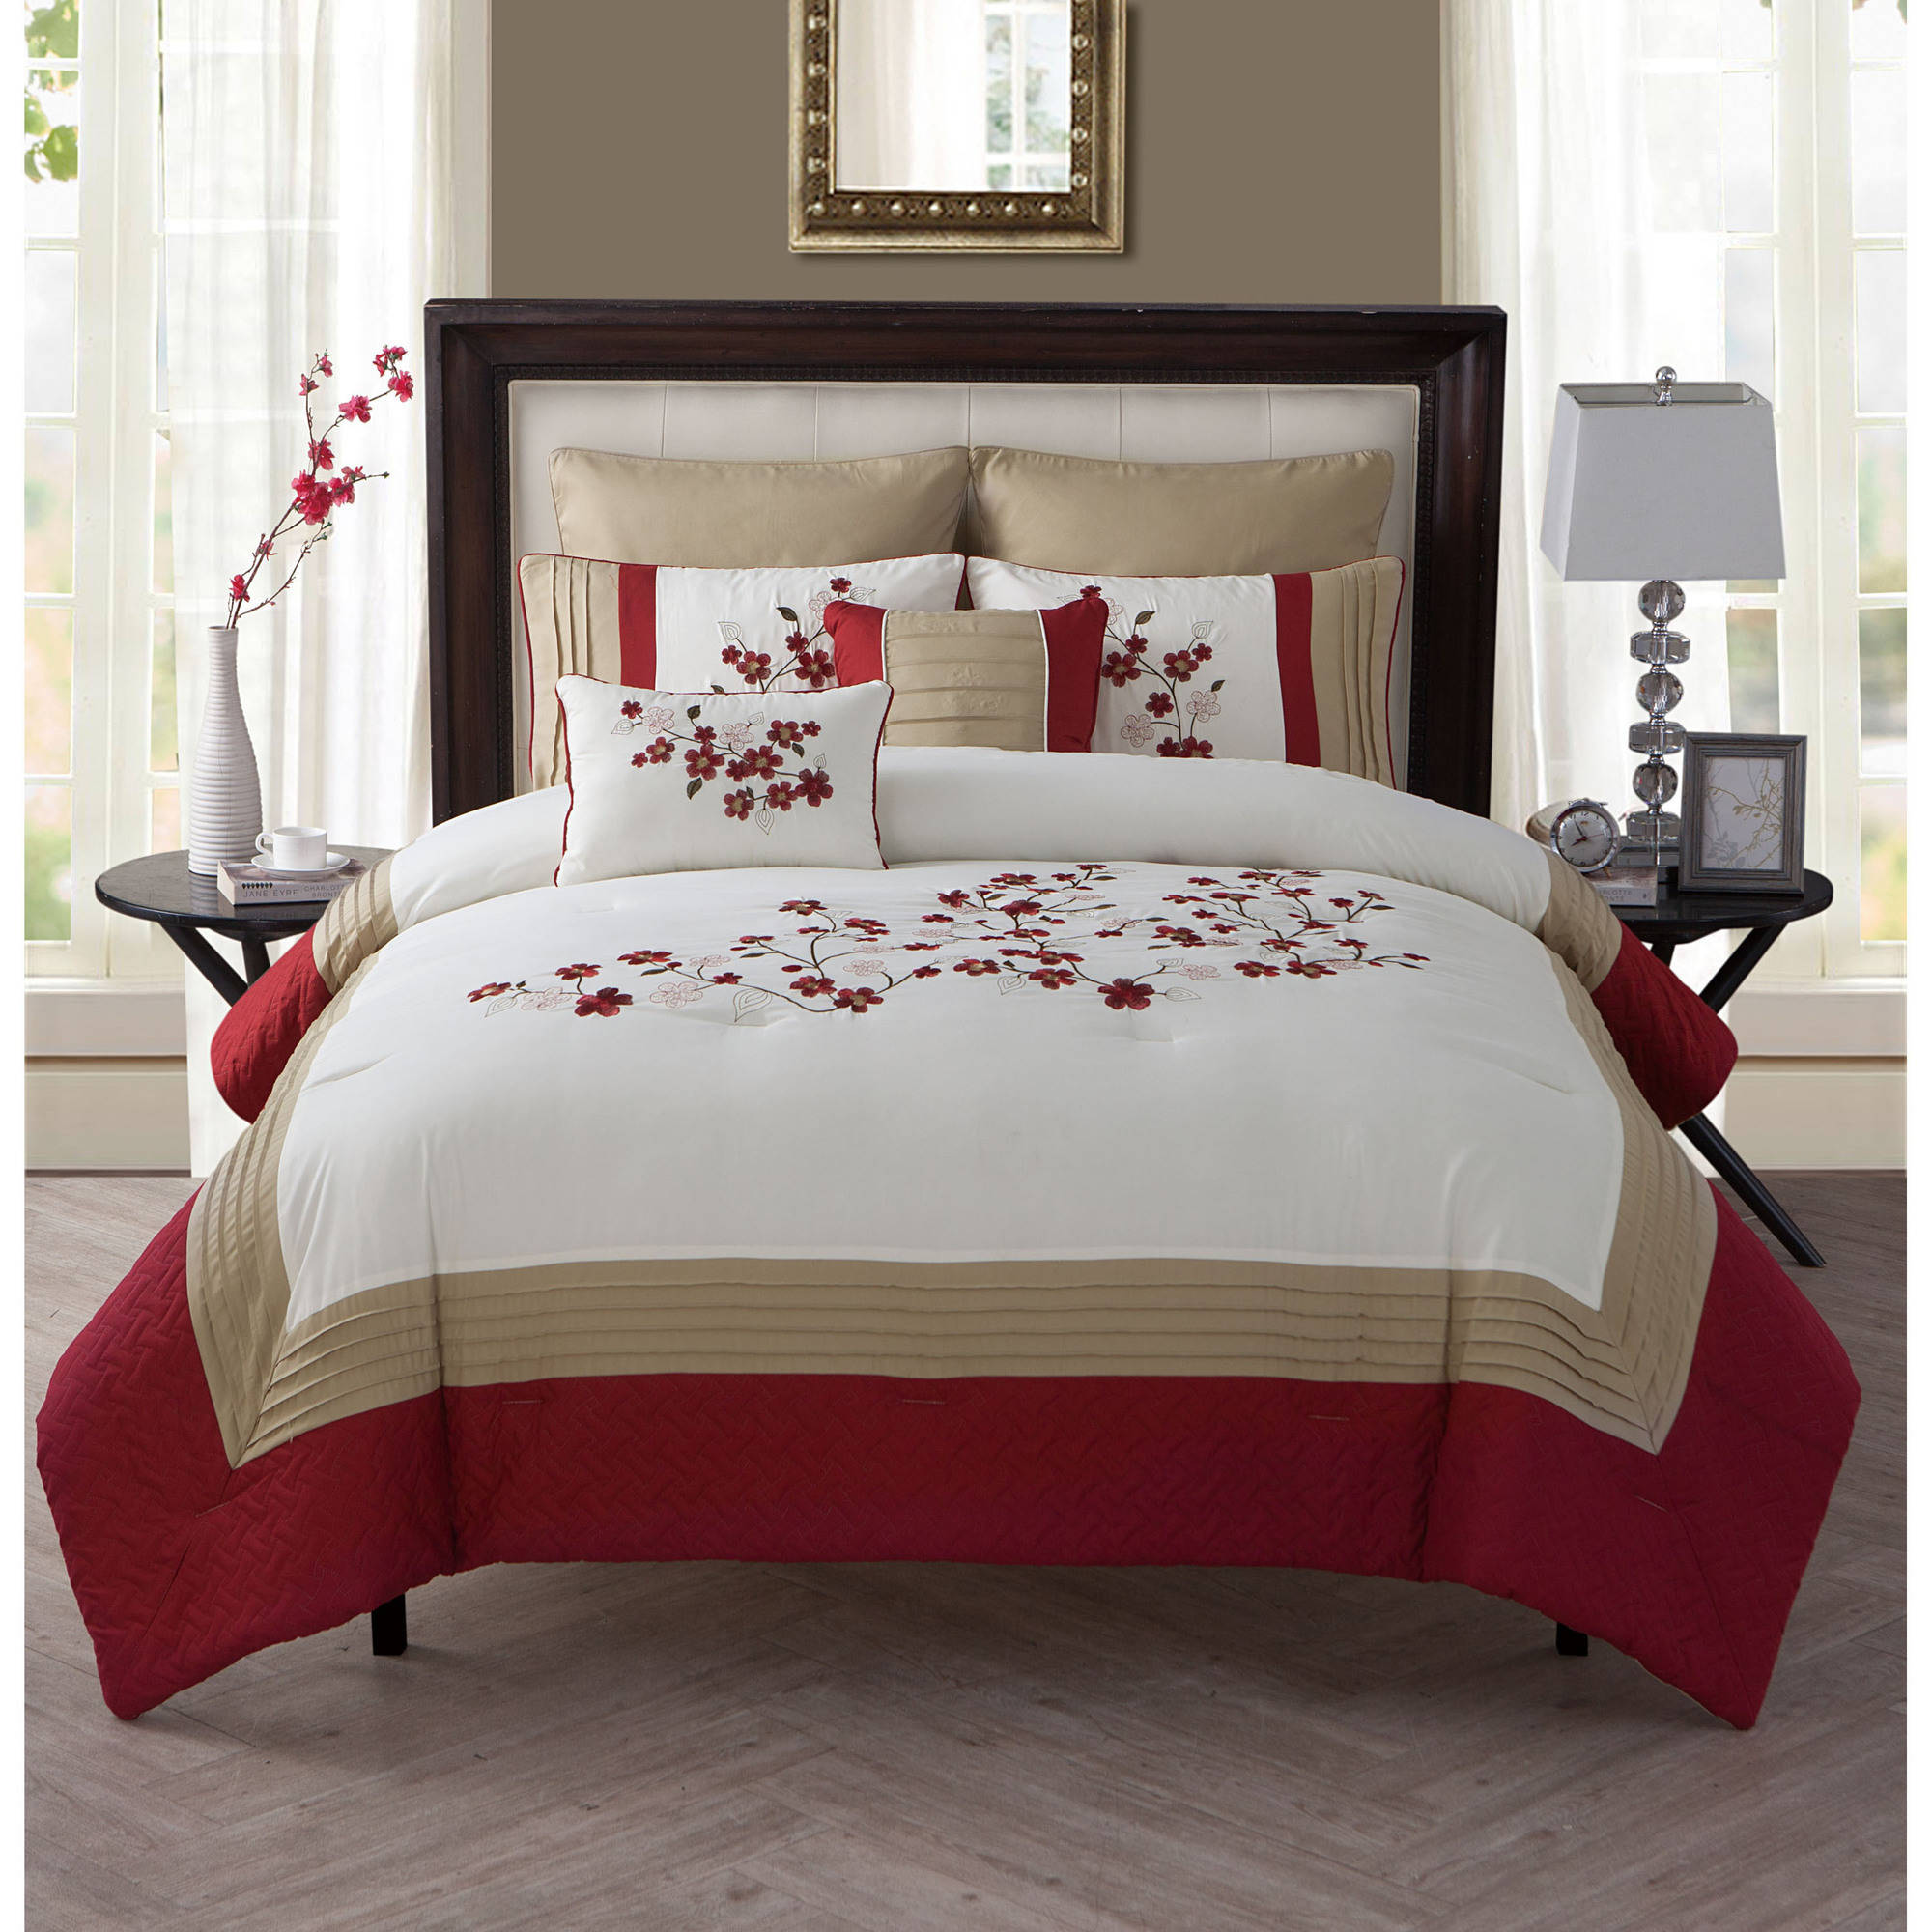 bedroom bedding sets better homes and gardens cherry blossom 7 comforter 10283